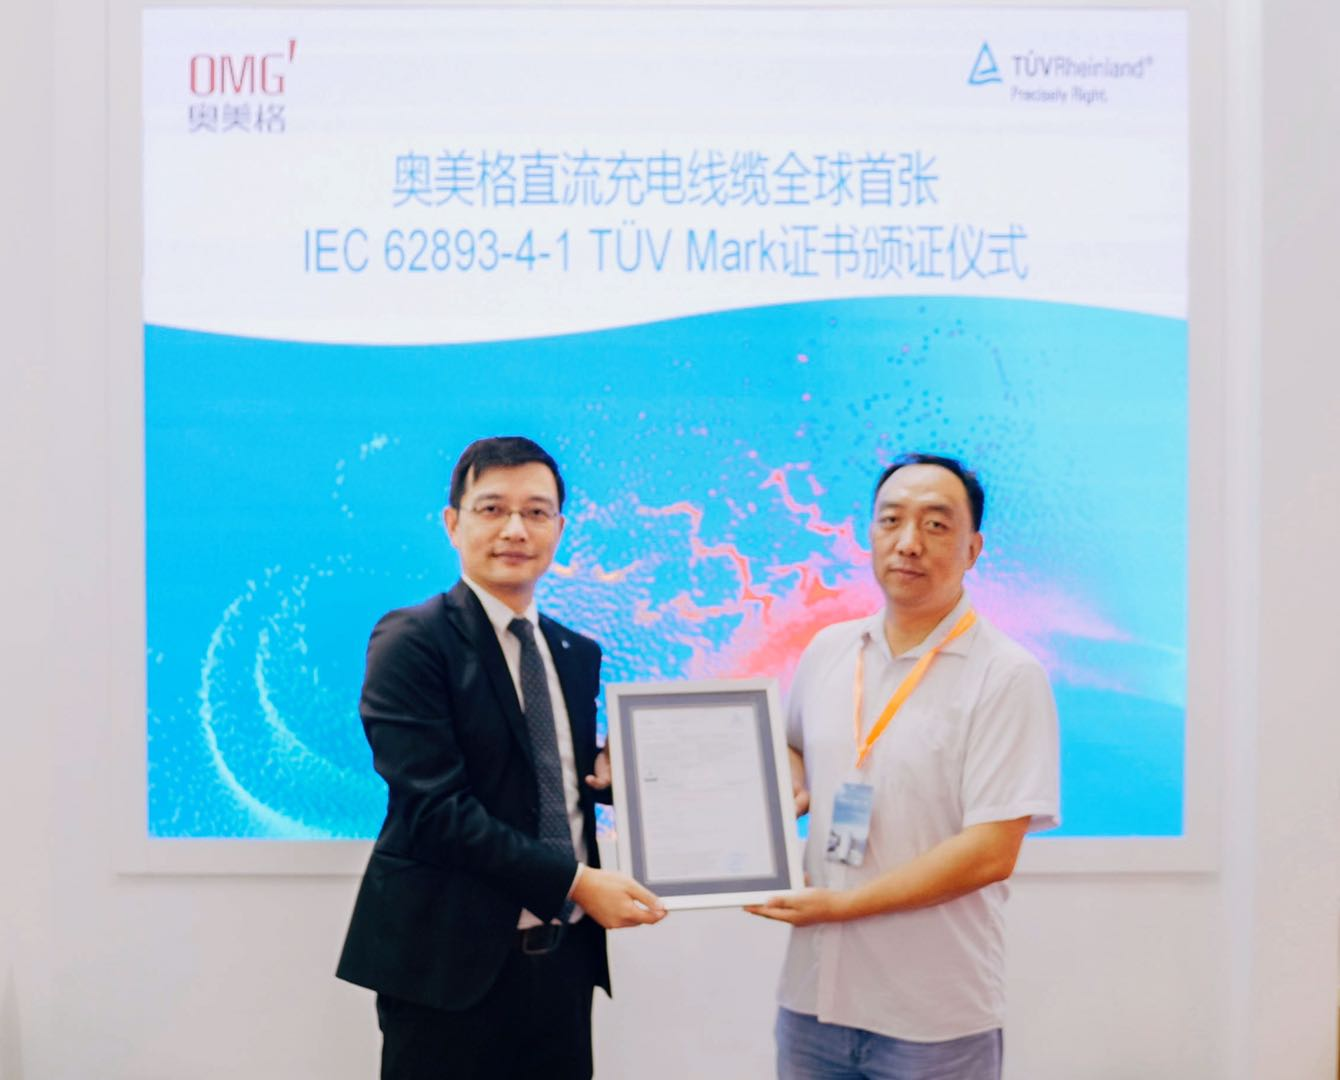 TÜV Rheinland awarded OMG the world's first DC charging cable standard certification